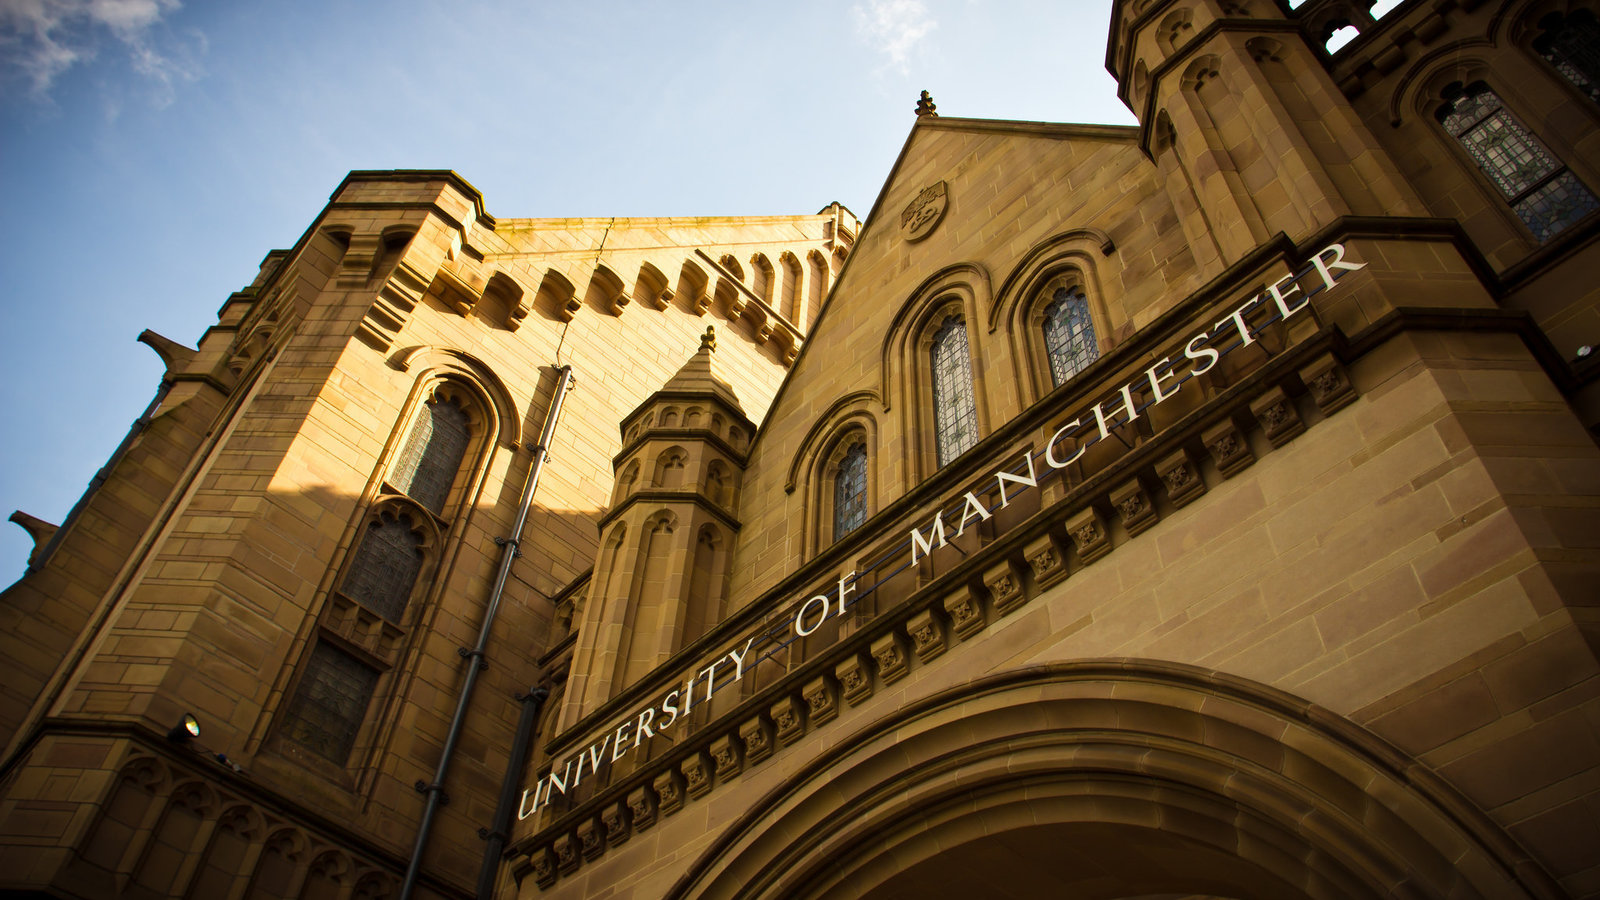 The university of manchester.    Courtesy: Change.org